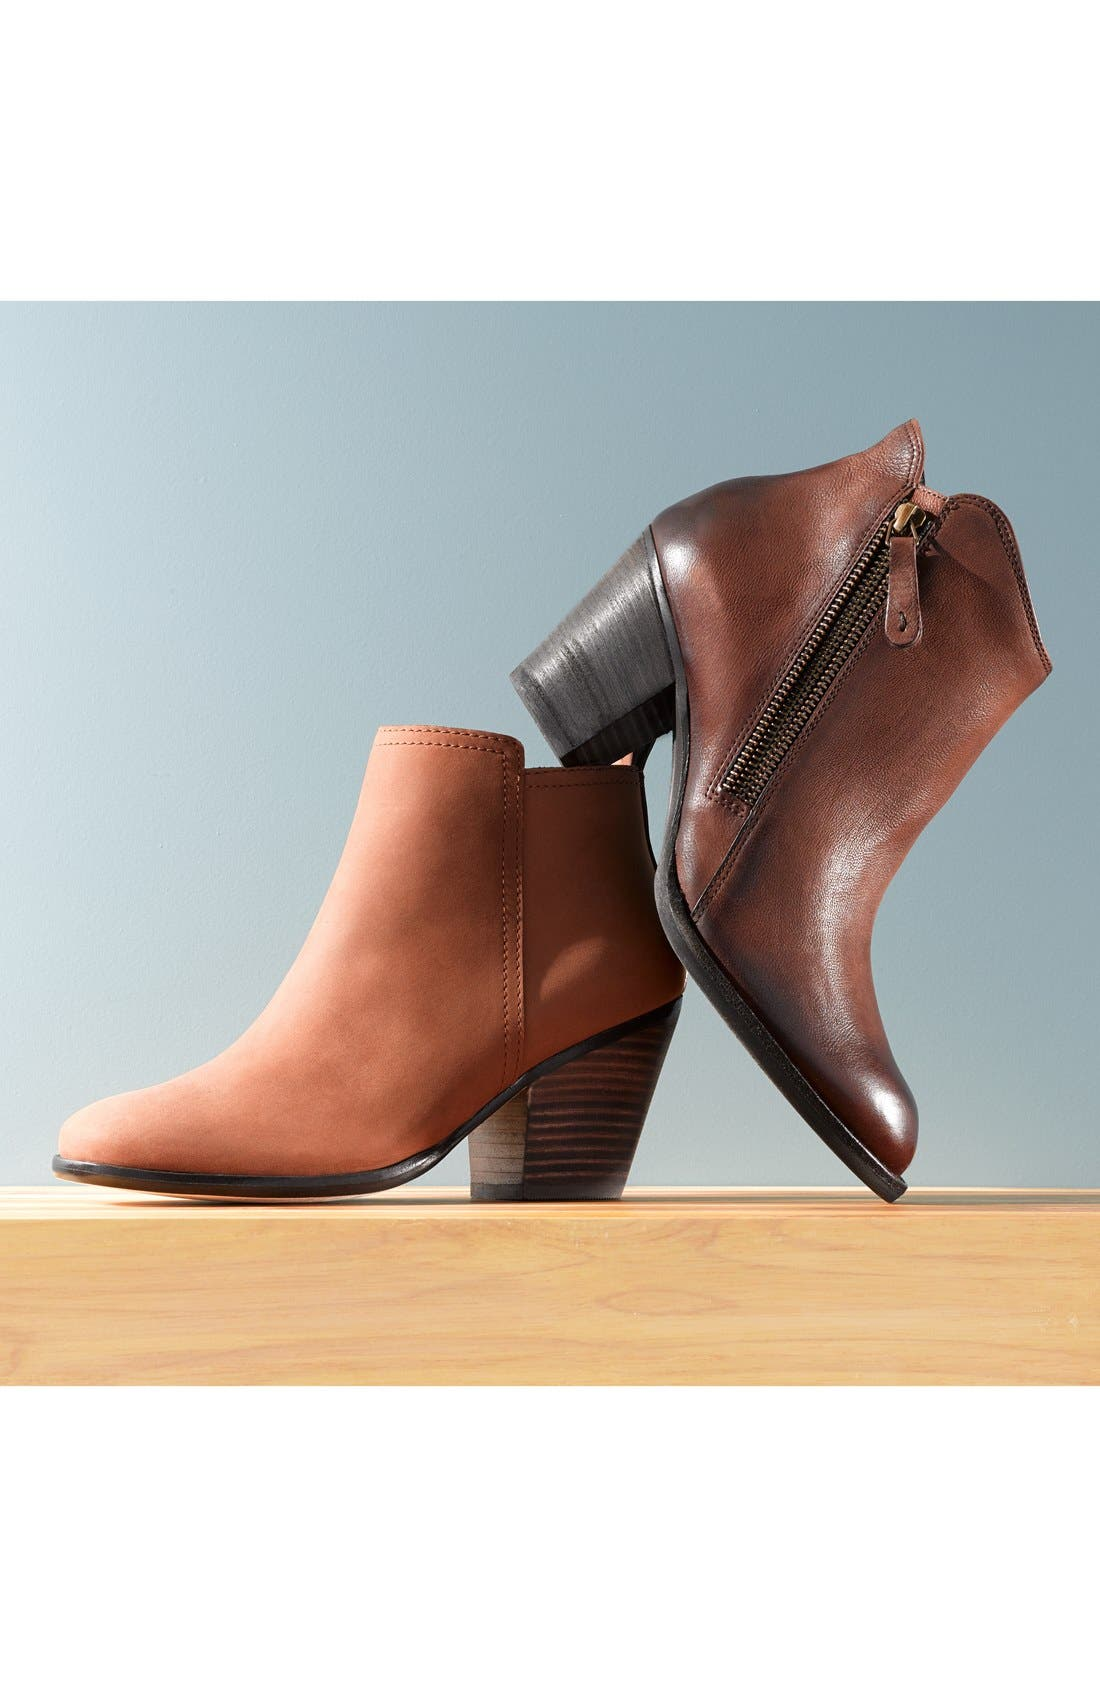 COLE HAAN,                             'Chesney' Round Toe Bootie,                             Alternate thumbnail 5, color,                             001